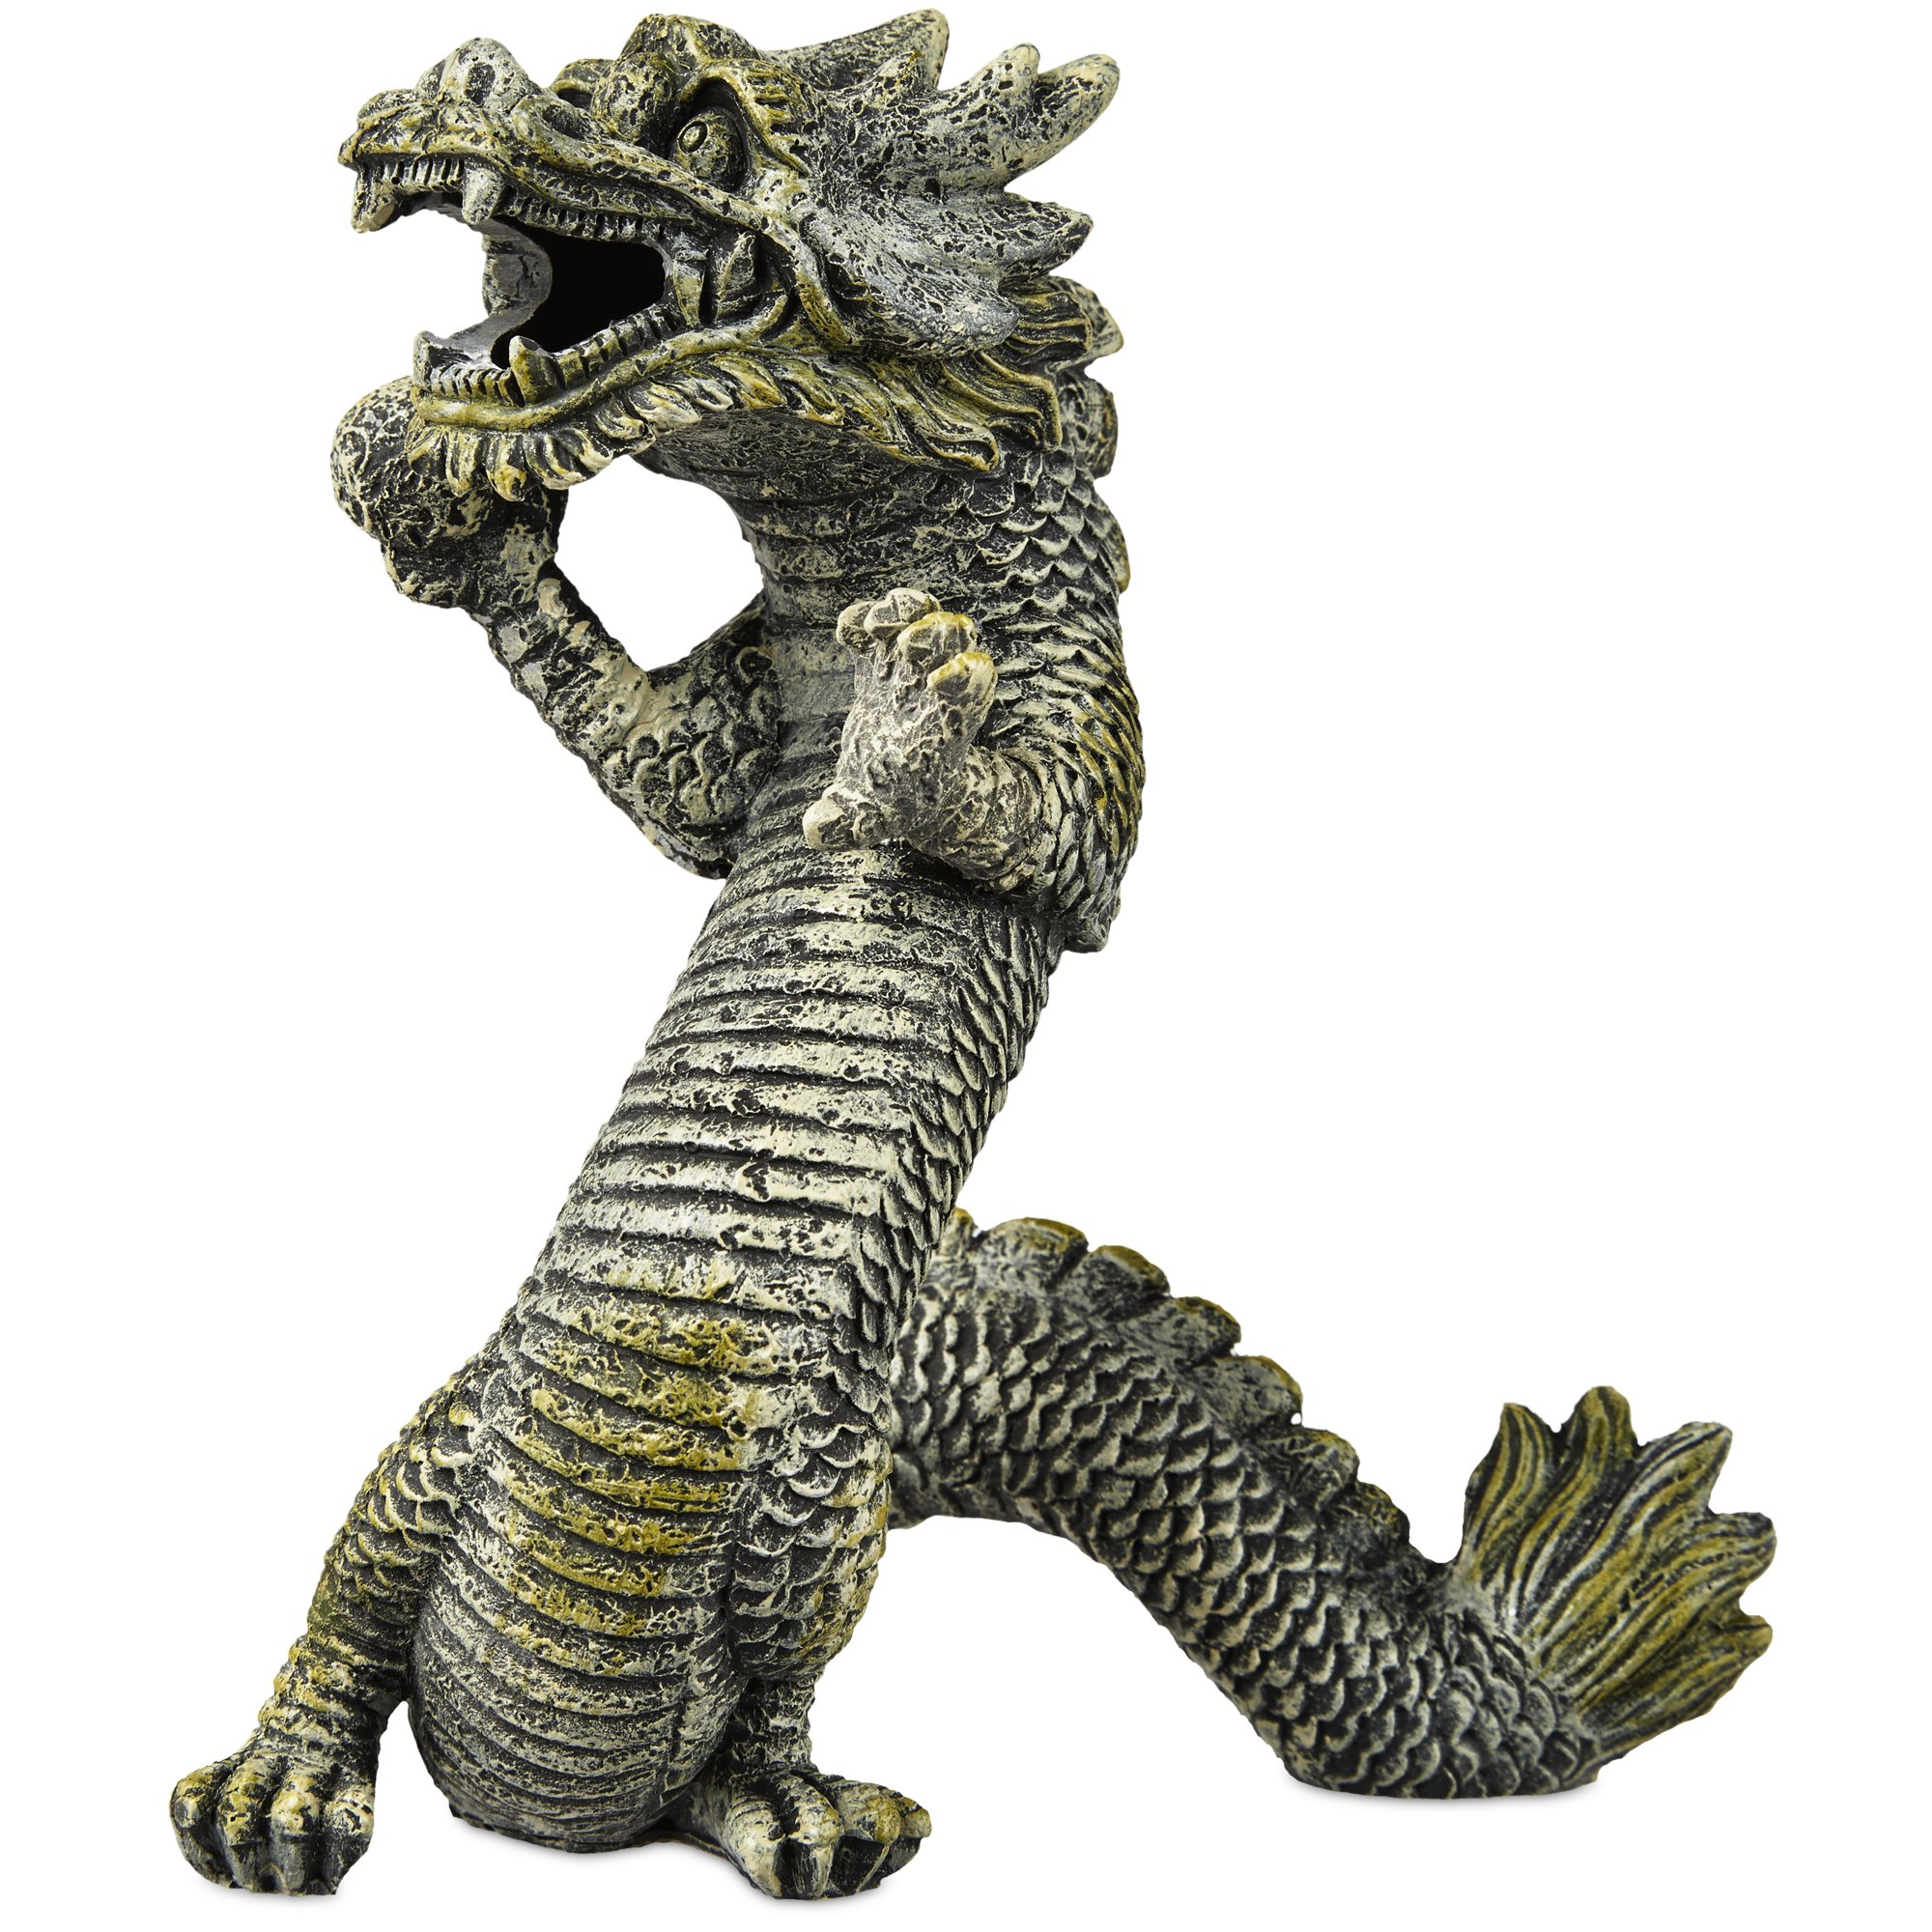 Imagitarium resin dragon aquatic decor petco for Aquatic decoration